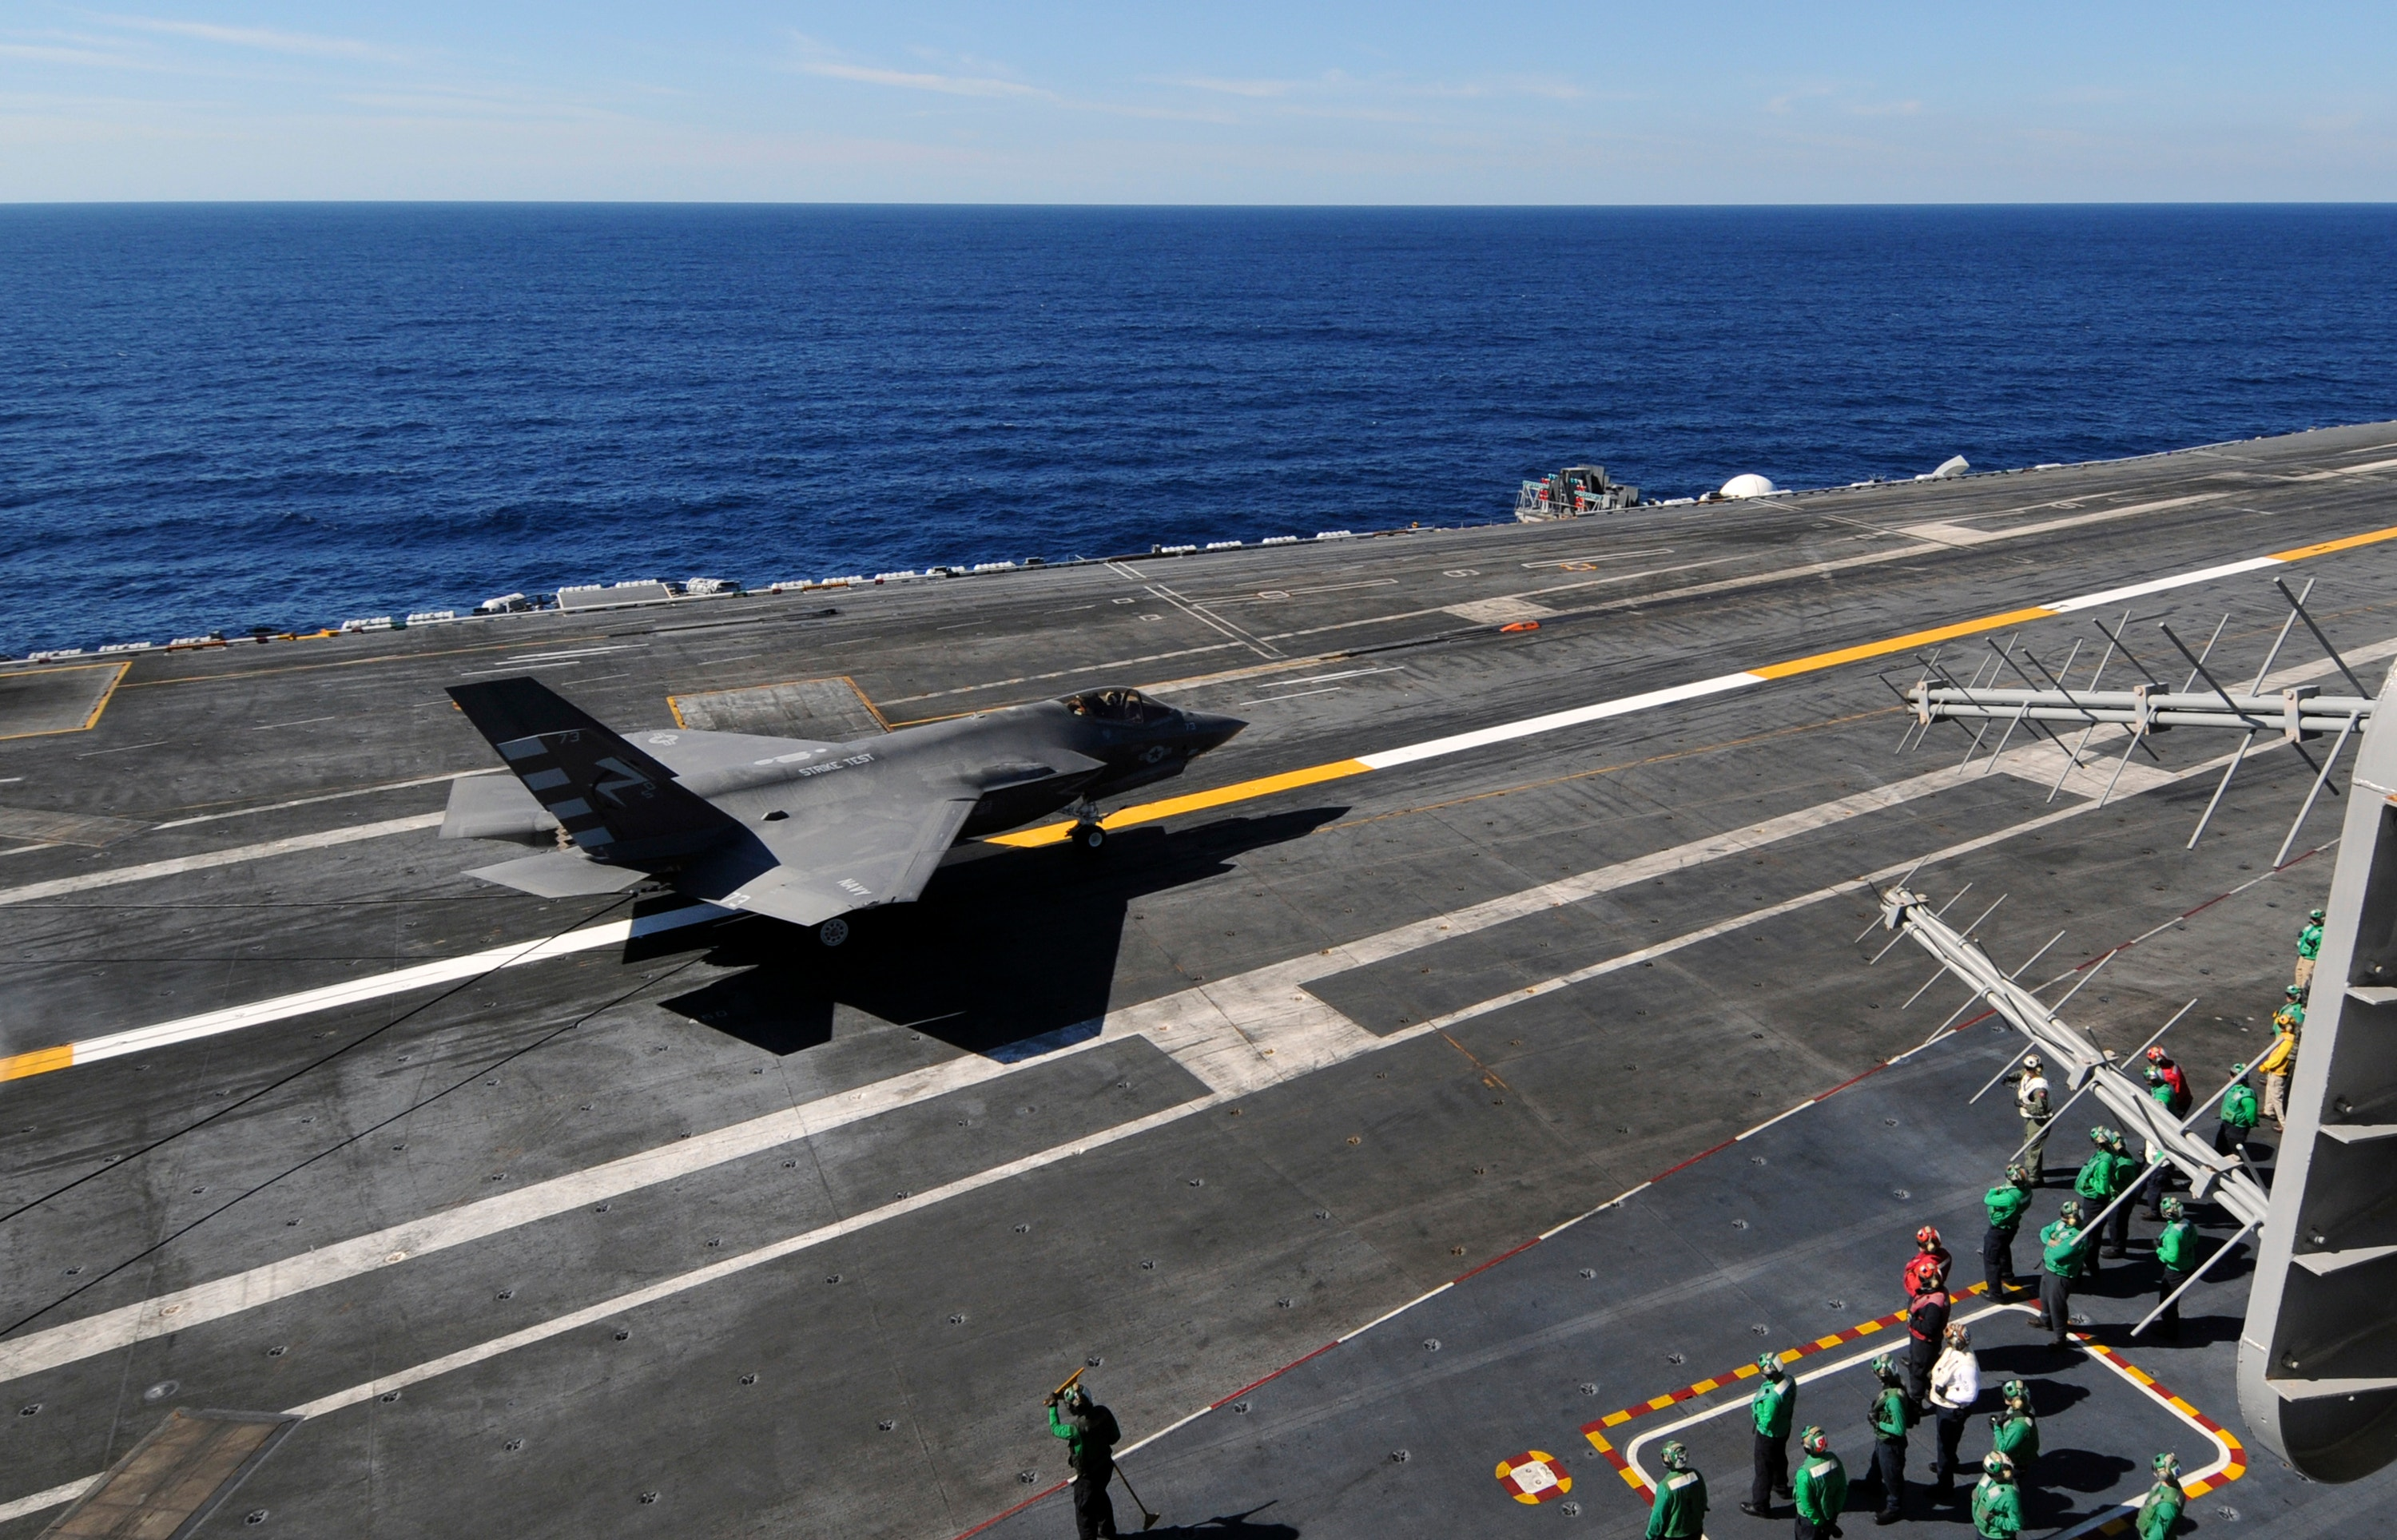 Navy completes first F-35C aircraft carrier landings | Fox ...